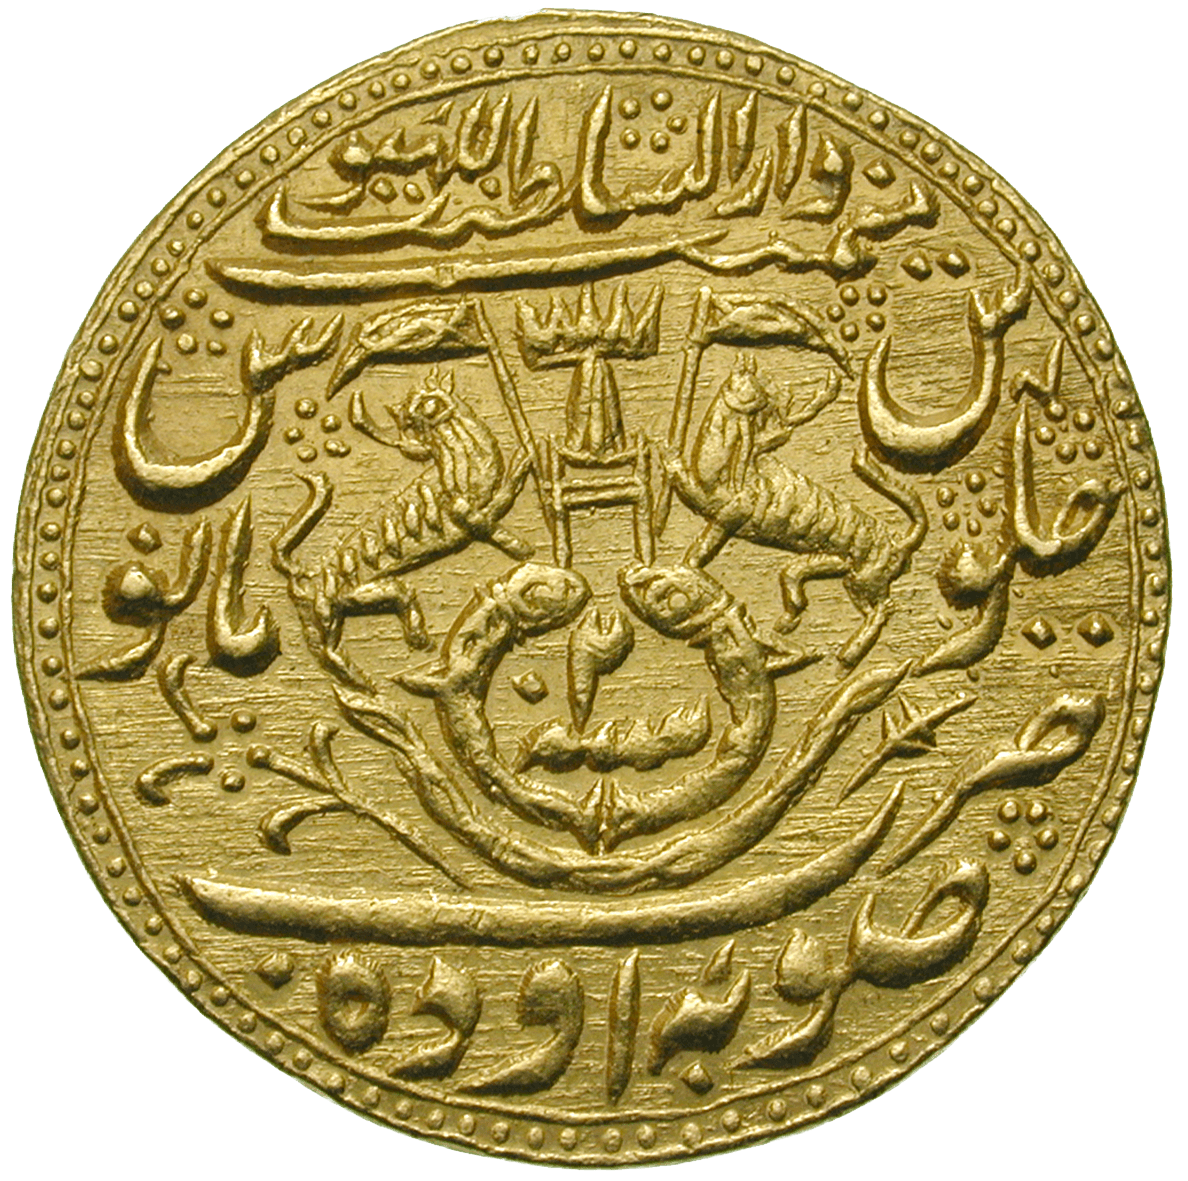 India, Realm of Awadh, Ghazi-ud-Din Haider, Mohur 1236 AH (reverse)